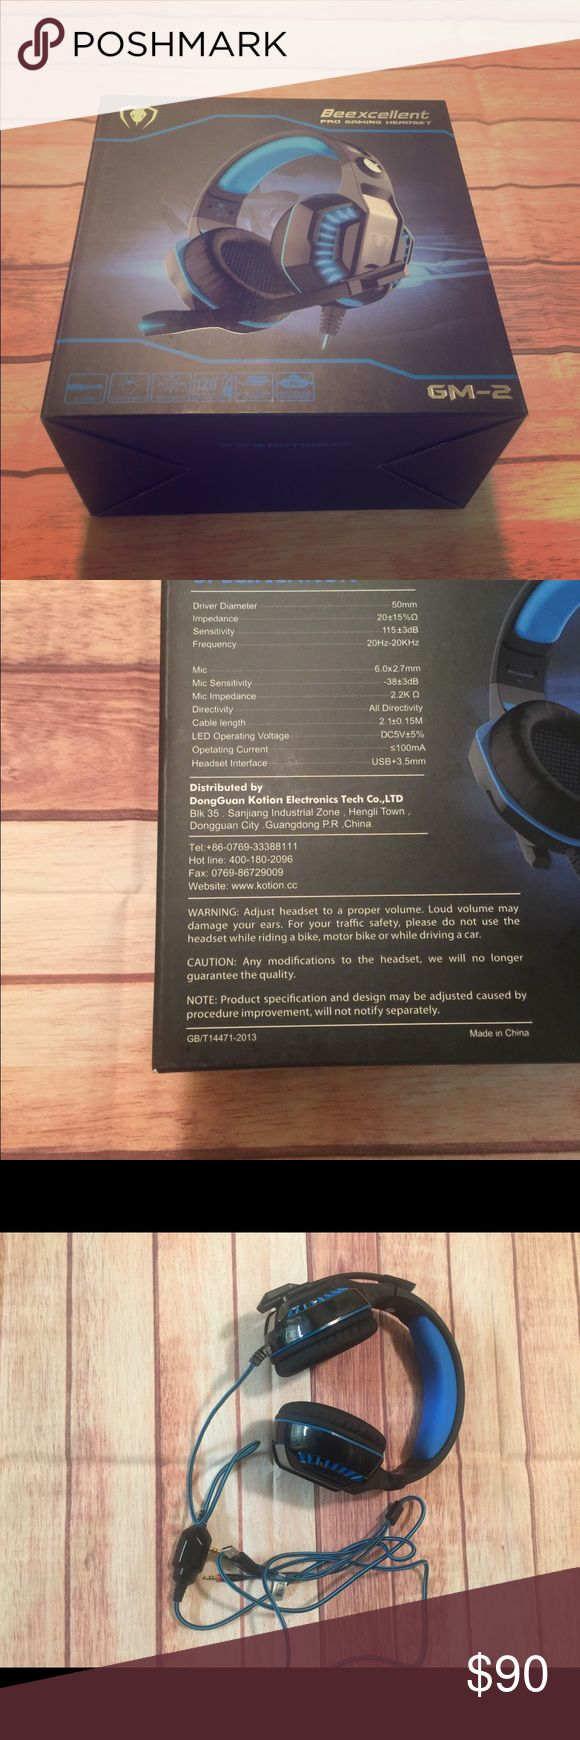 Beexcellent Pro Gaming Headset for PS4,XBOX ONE. Condition: used only wore twice Driver Diameter: 50mm Frequency: 20Hz-20Hz Mic: 6.0(2.7mm) Headset interface: USB+3.5mm- Note: any further info will be on the second picture of the gaming headset box including the mic sensitivity etc. Beexcelent Other